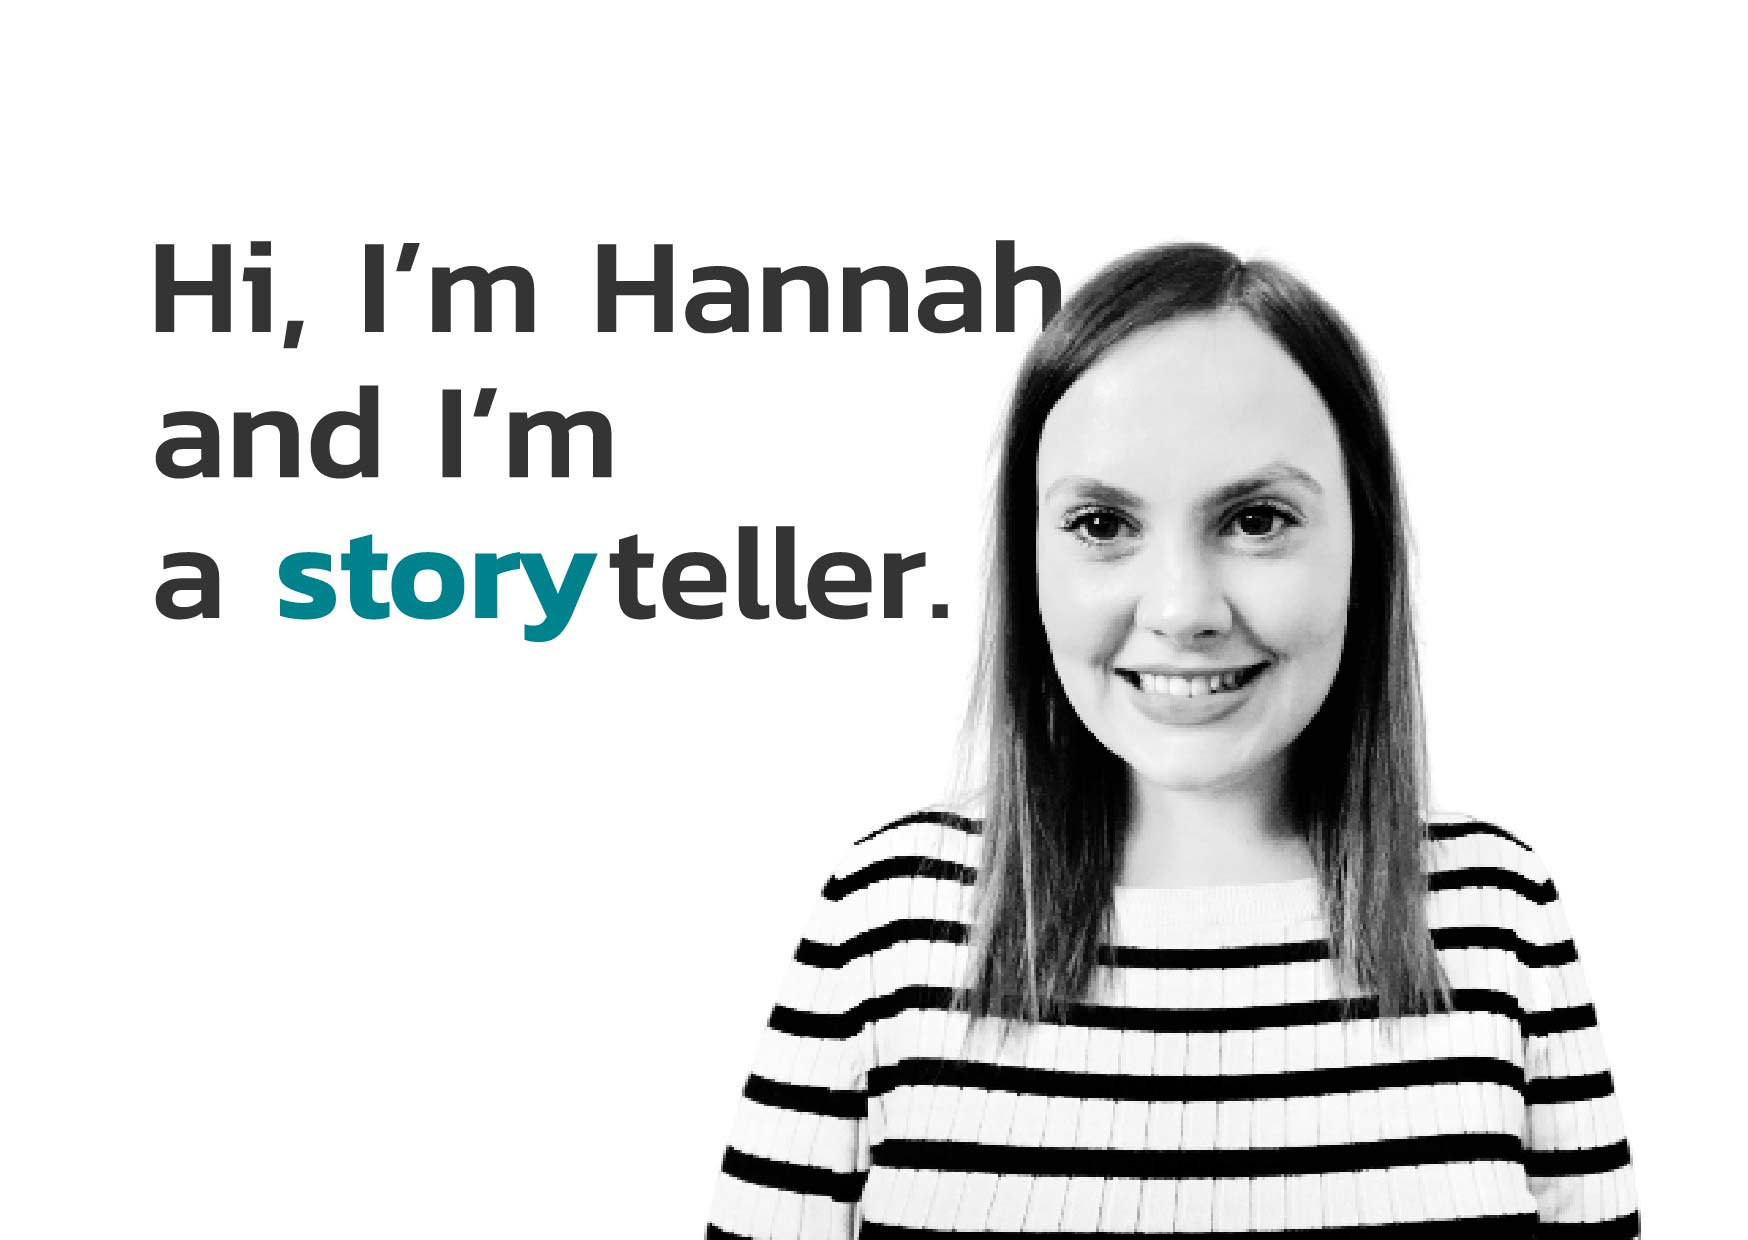 My name is Hannah, and I tell stories!